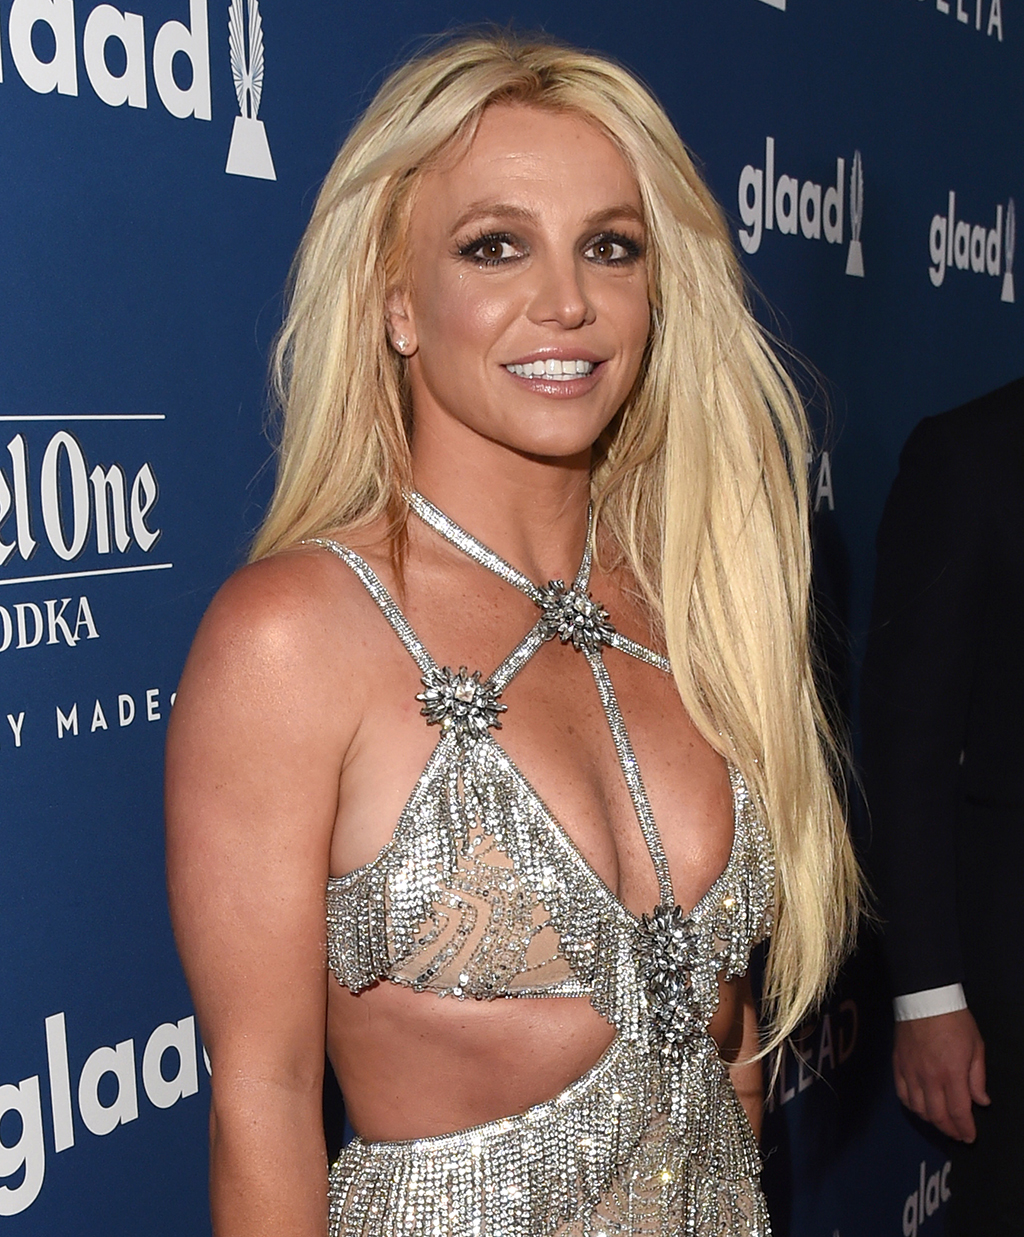 Honoree Britney Spears attends the 29th Annual GLAAD Media Awards at The Beverly Hilton Hotel on April 12, 2018 in Beverly Hills,